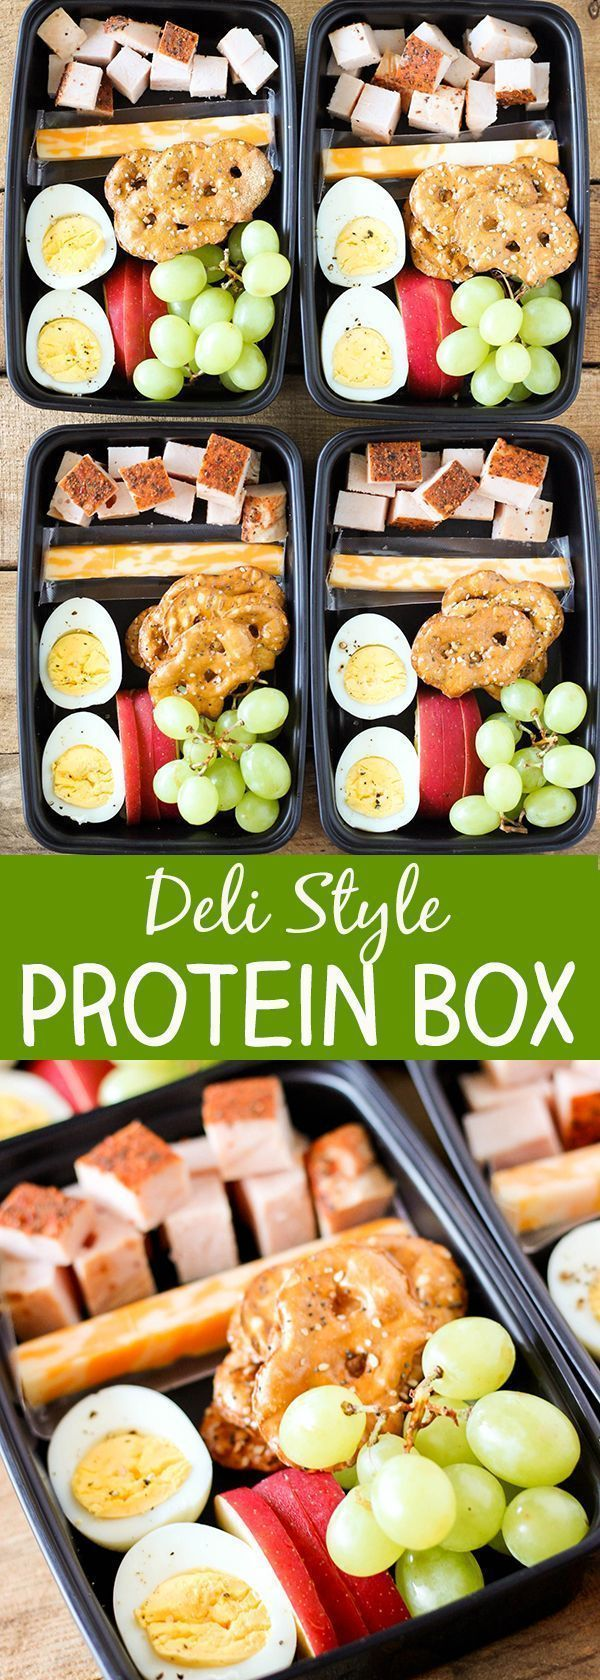 Make Ahead Deli Style Protein Box with @jennieorecipes | Healthy meal you can eat for lunch!  For more easy food recipes, creative craft ideas, easy home decor and DIY projects, check us out at #no2pencil. #food #healthyrecipes #healthy #recipeoftheday #r